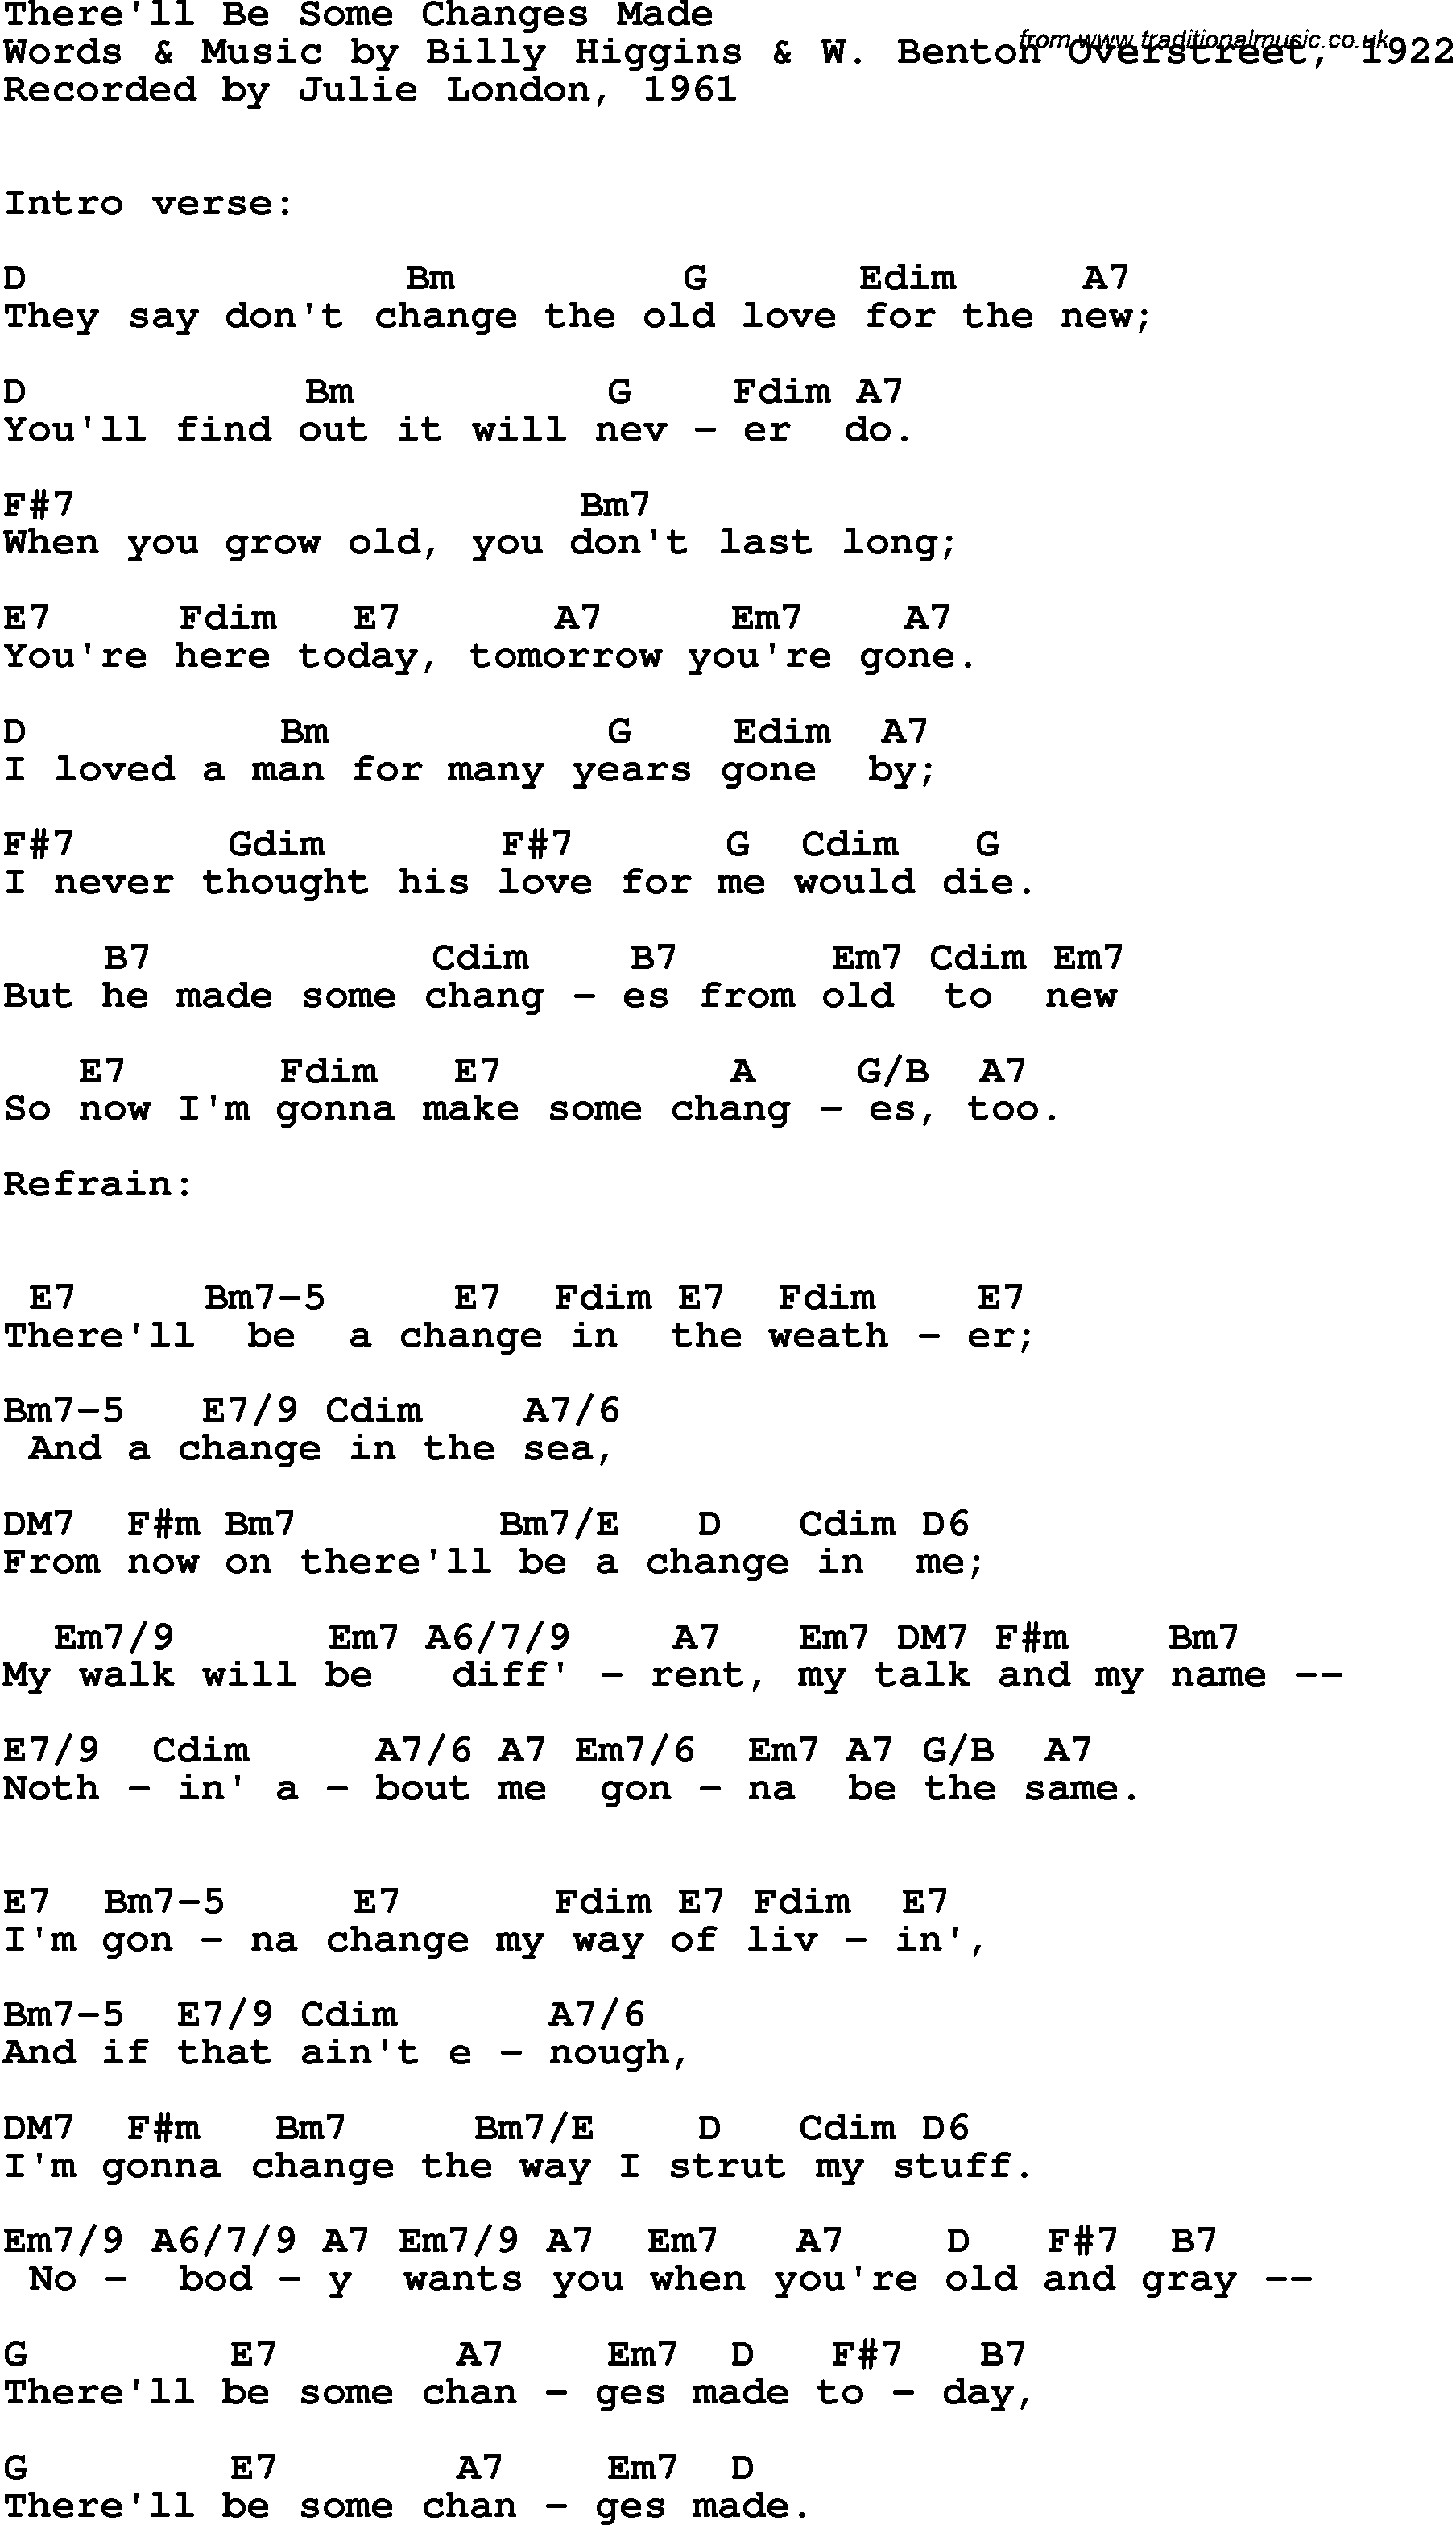 Song Lyrics With Guitar Chords For Therell Be Some Changes Made